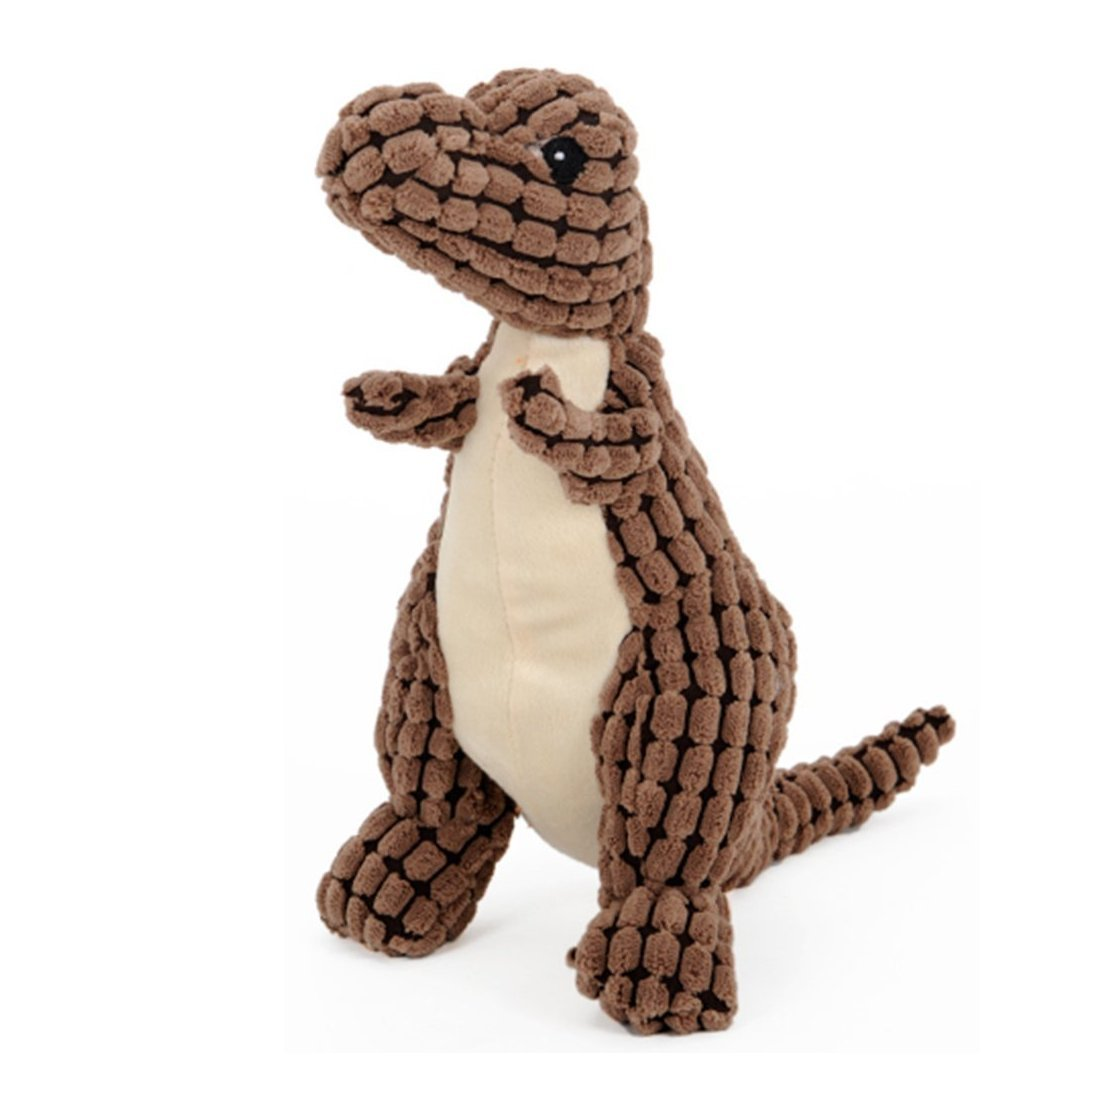 Stock Show 1Pc Pet Squeak Toy, Plush Dinosaur Shape Teeth Clean Stuffed Biting Playtoy for Small Medium Dog/Puppy/Pup, Light Brown